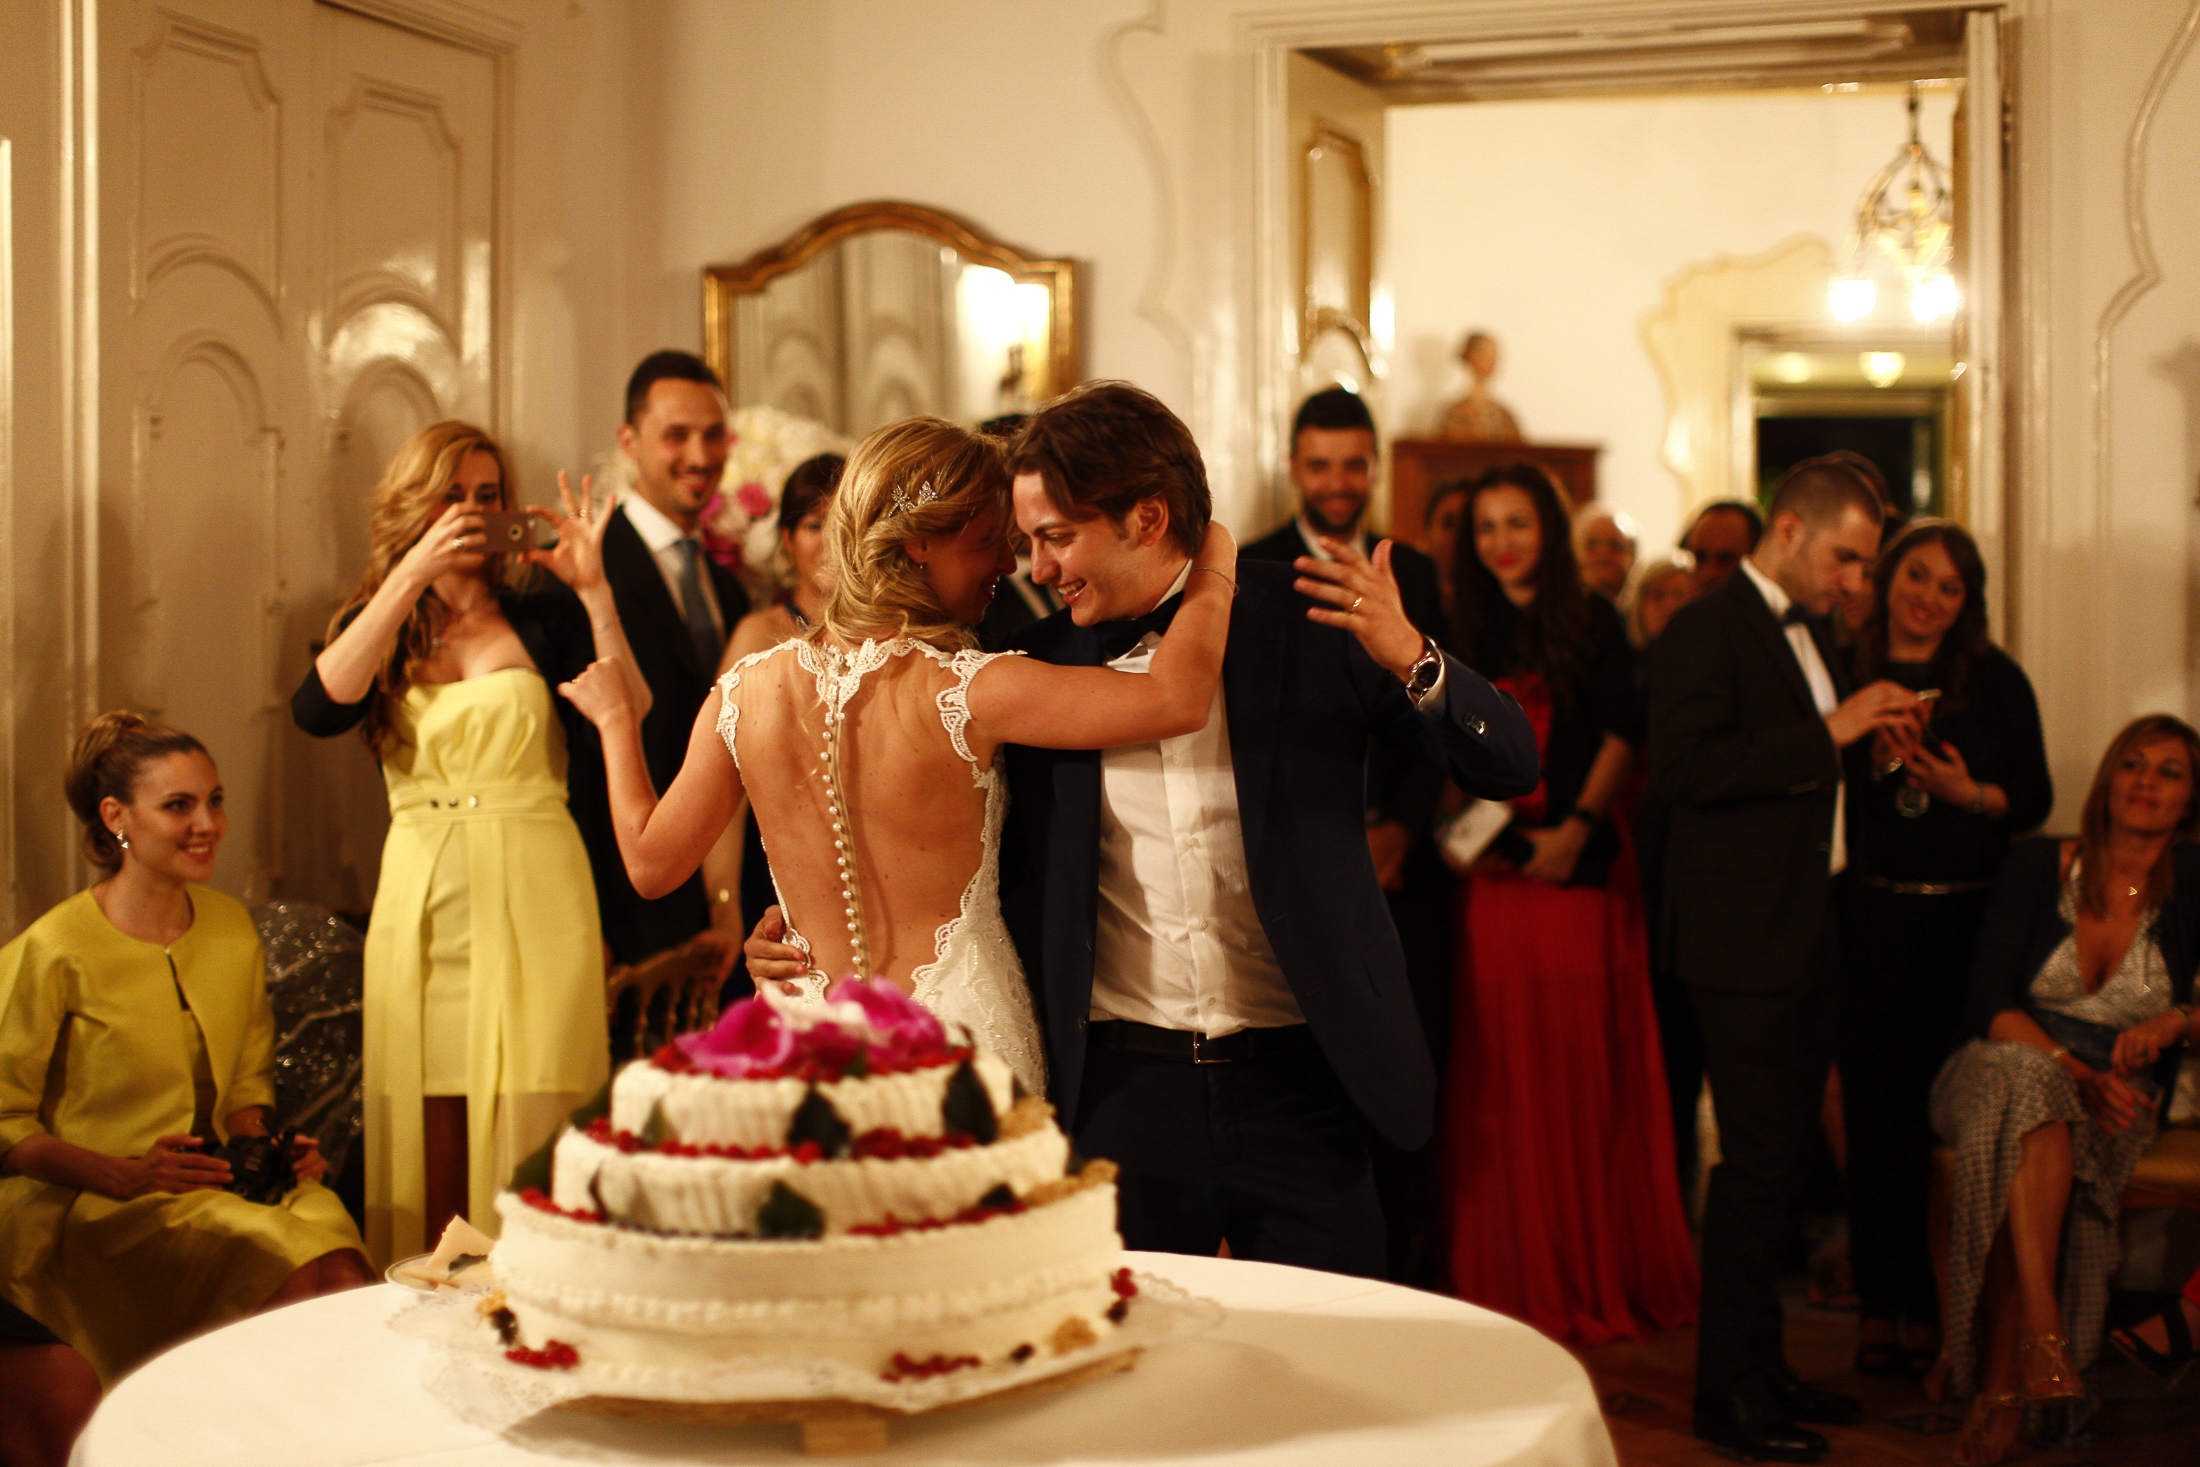 pasquale andreotti bride and groom dancing beyond the wedding cake